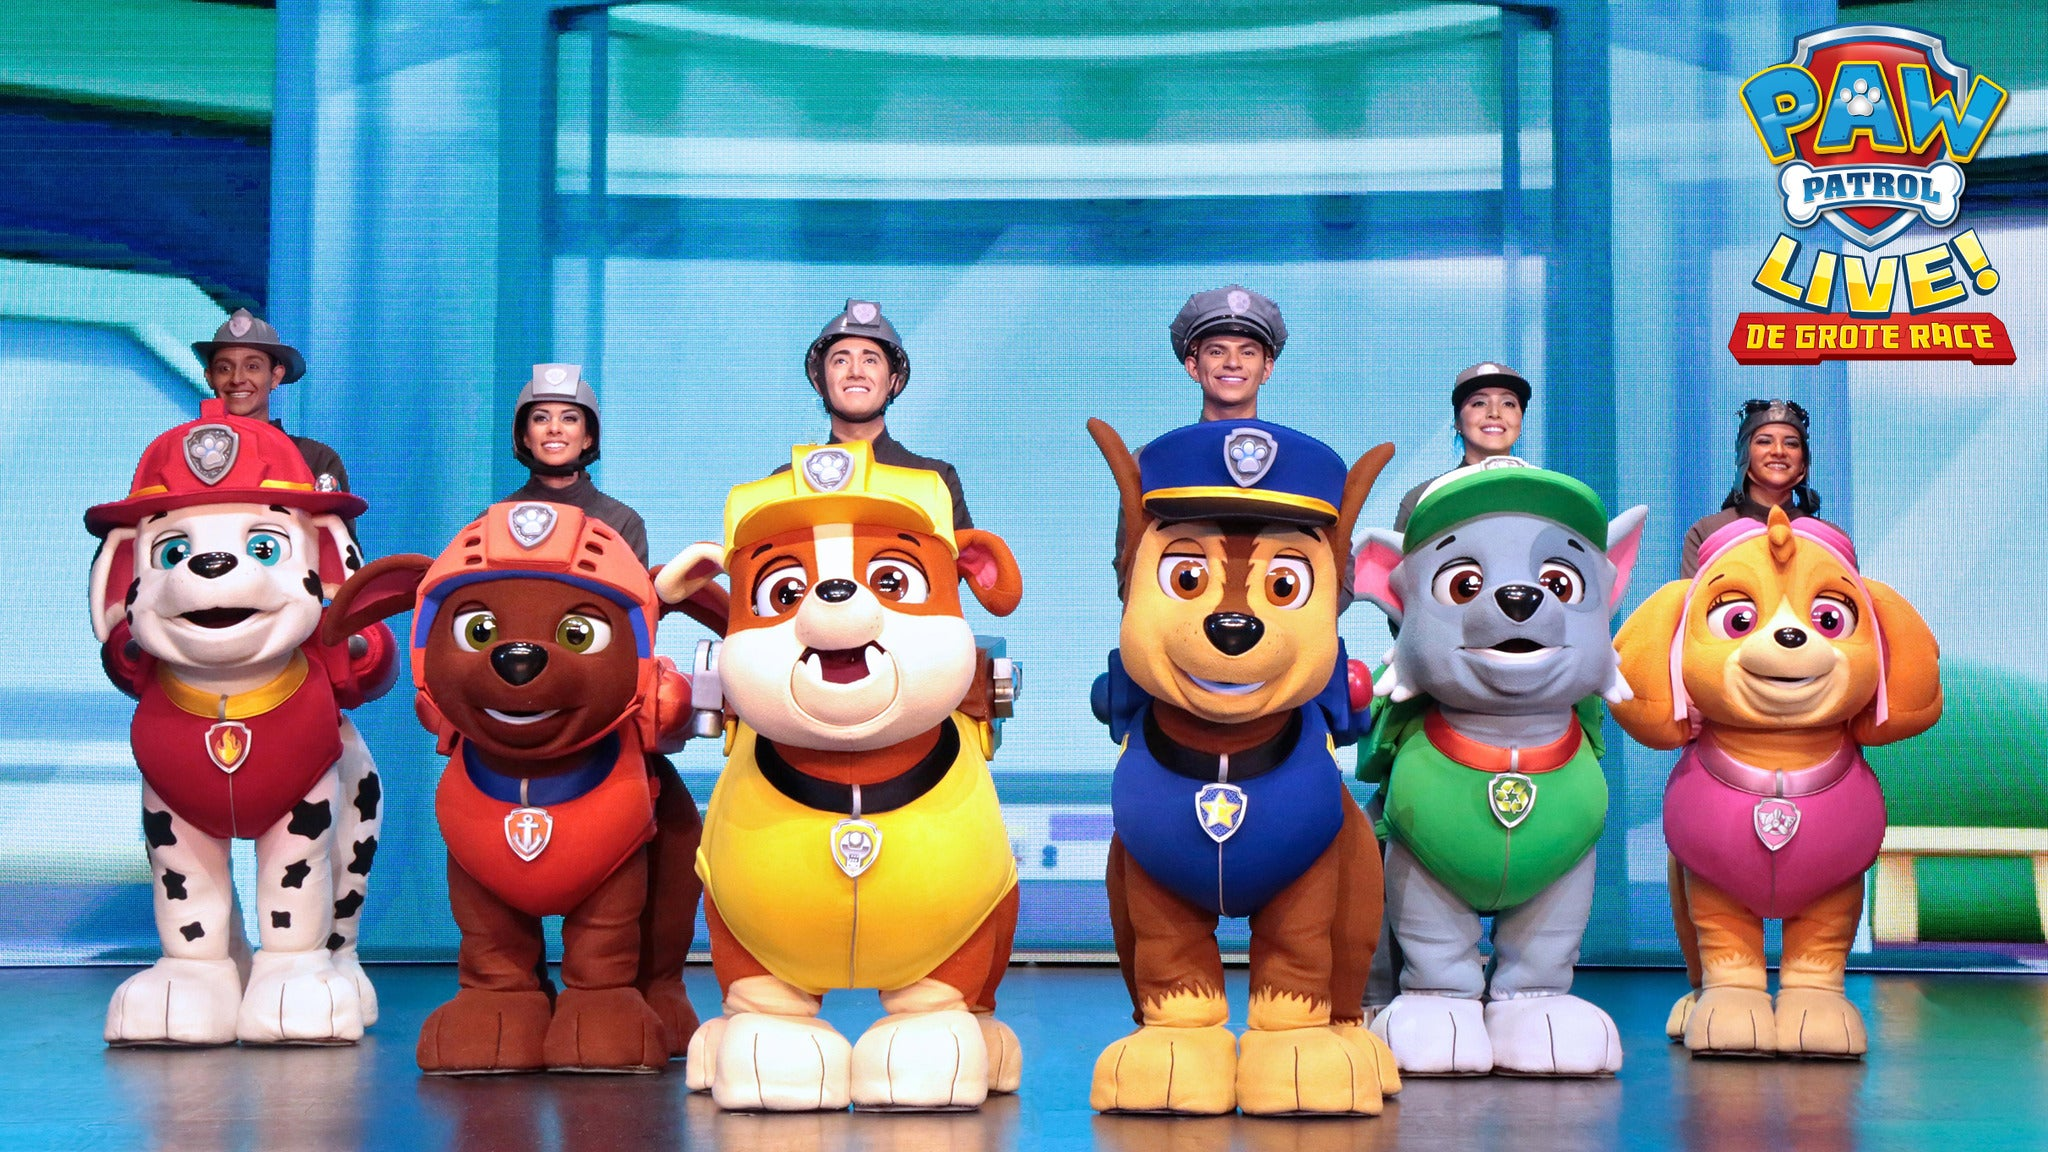 PAW Patrol Live! at Donald L. Tucker Center